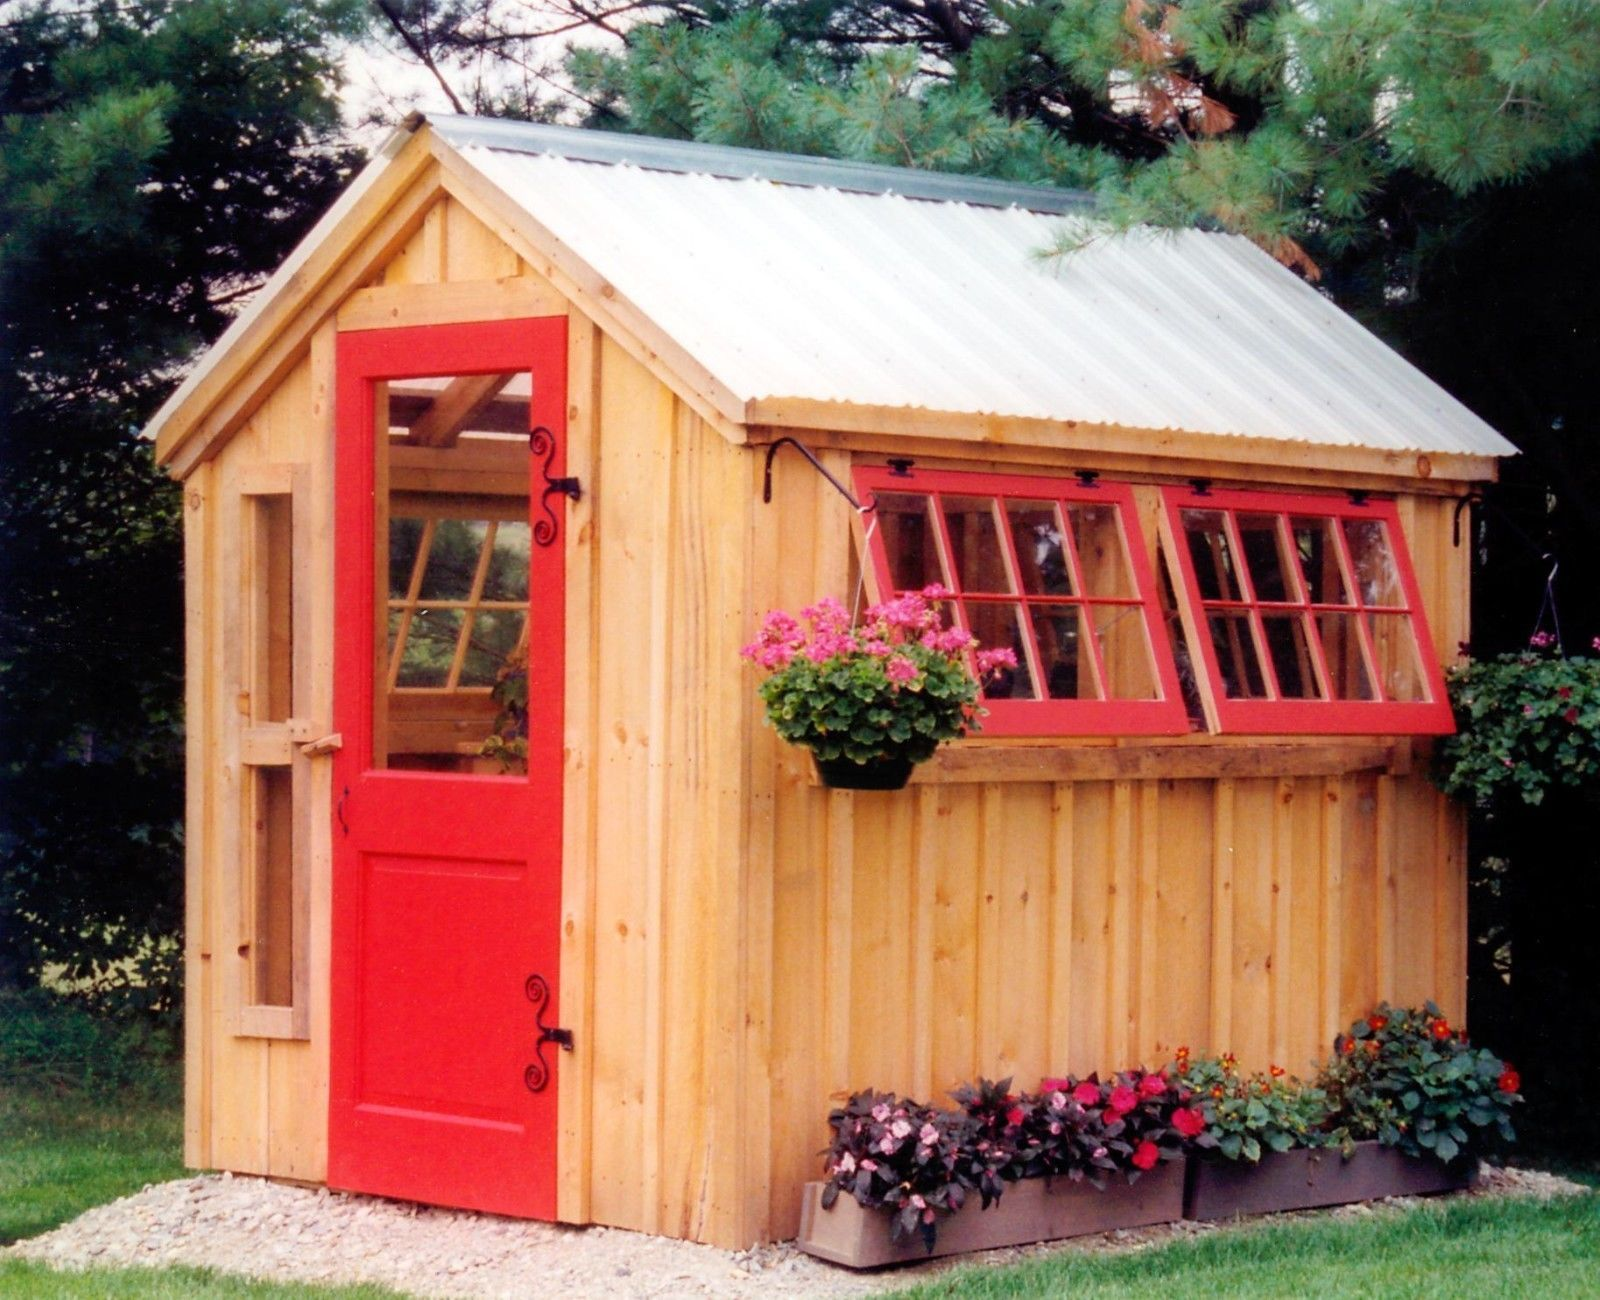 Garden Shed Hinged Windows Red Door Metal Roof Greenhouse Plans Building A Shed Wooden Greenhouses